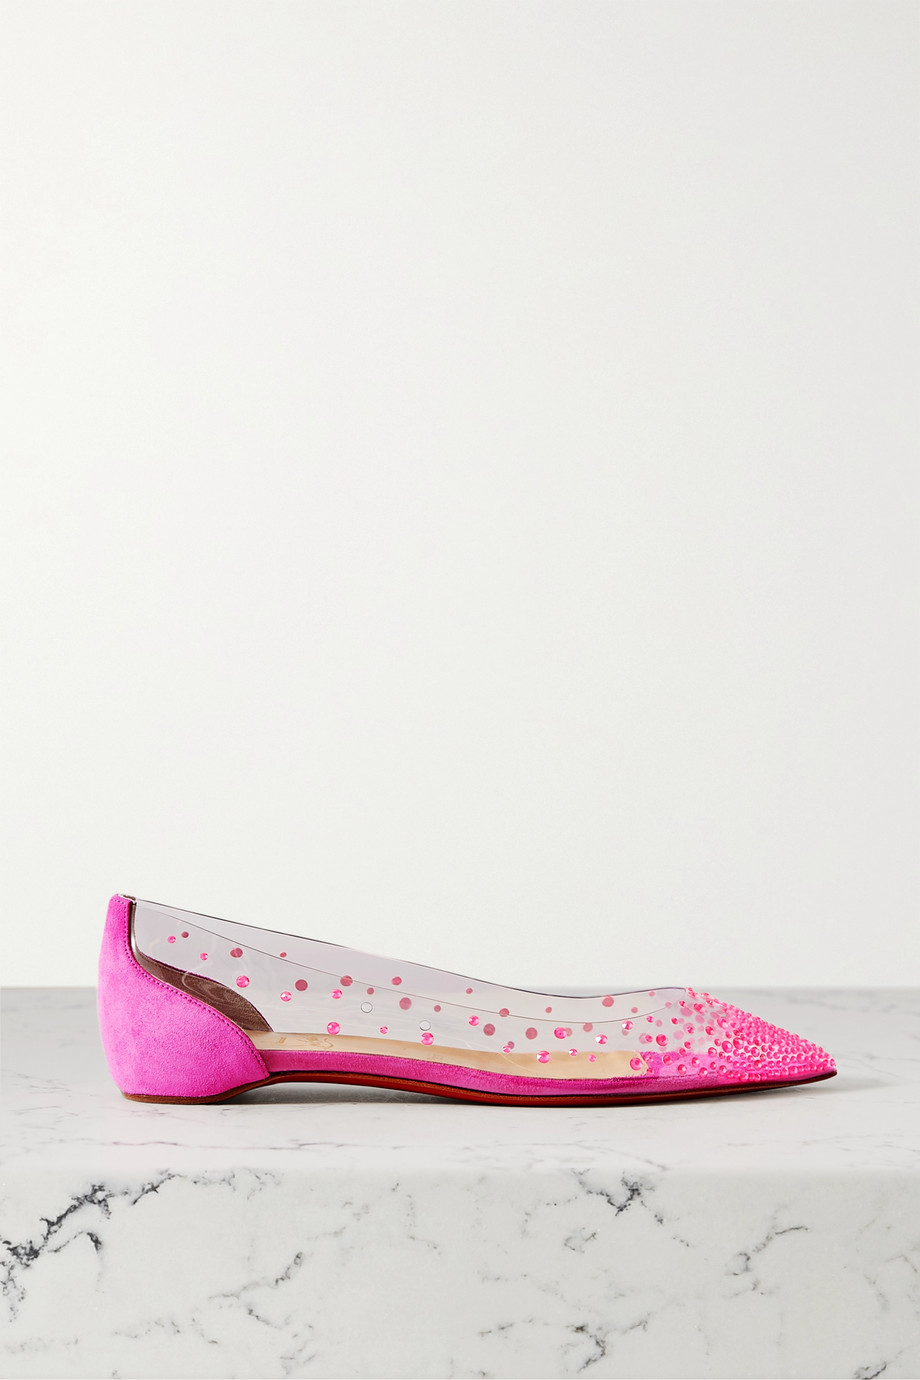 Christian Louboutin Degrastrass embellished PVC and suede point-toe flats